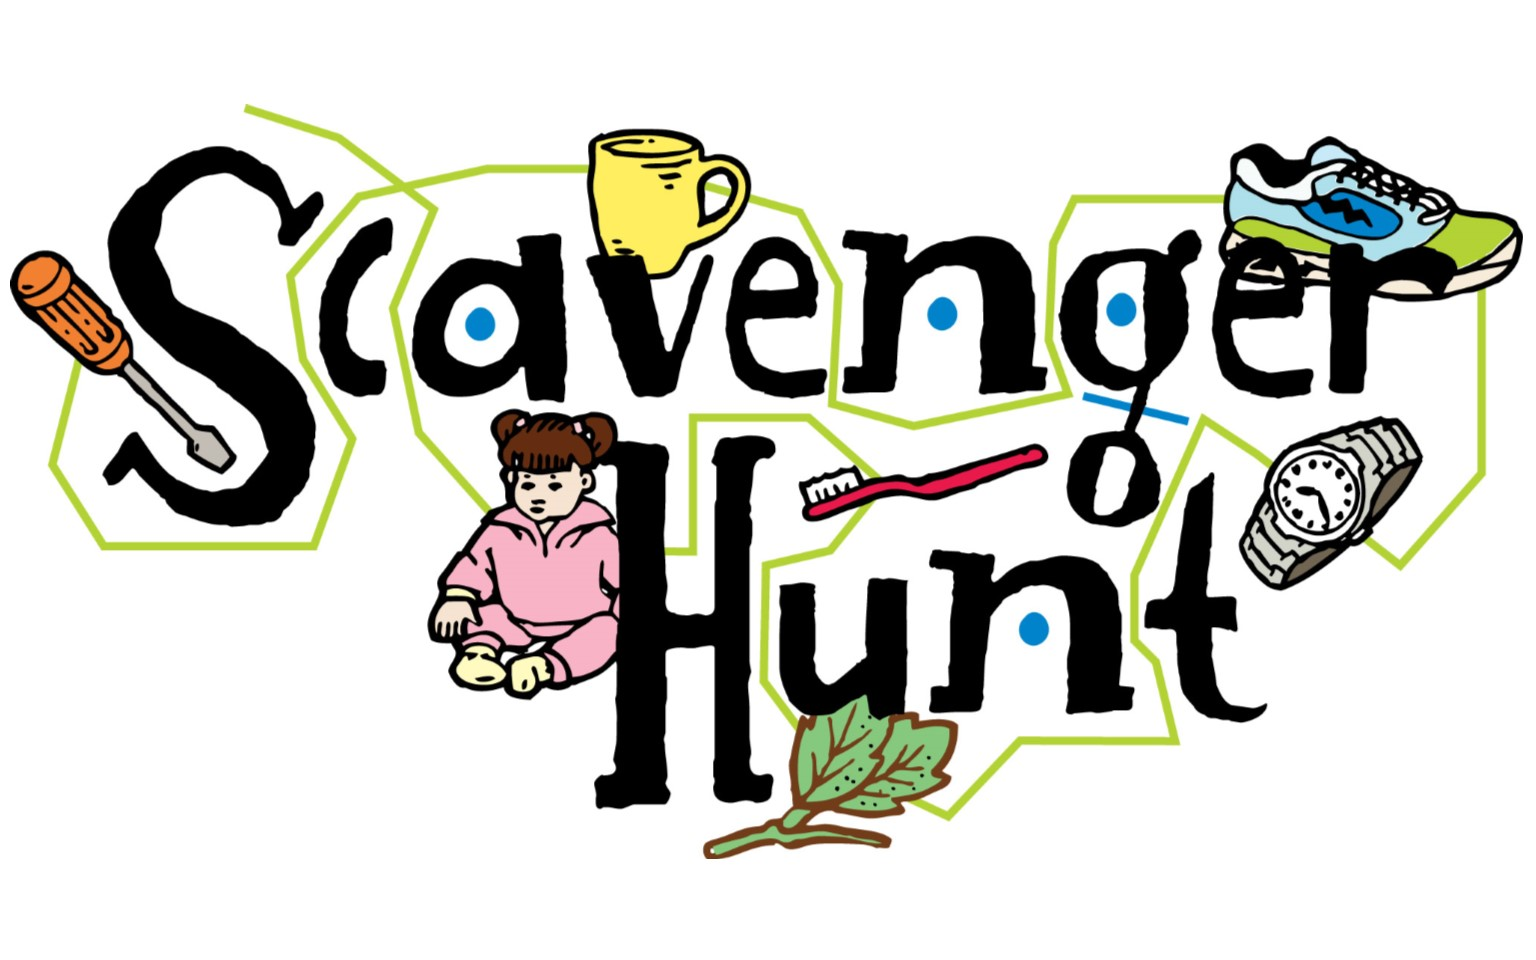 hs youth scavenger hunt oct 29 7pm tlcms org rh tlcms org scavenger hunt clipart png scavenger hunt clipart png